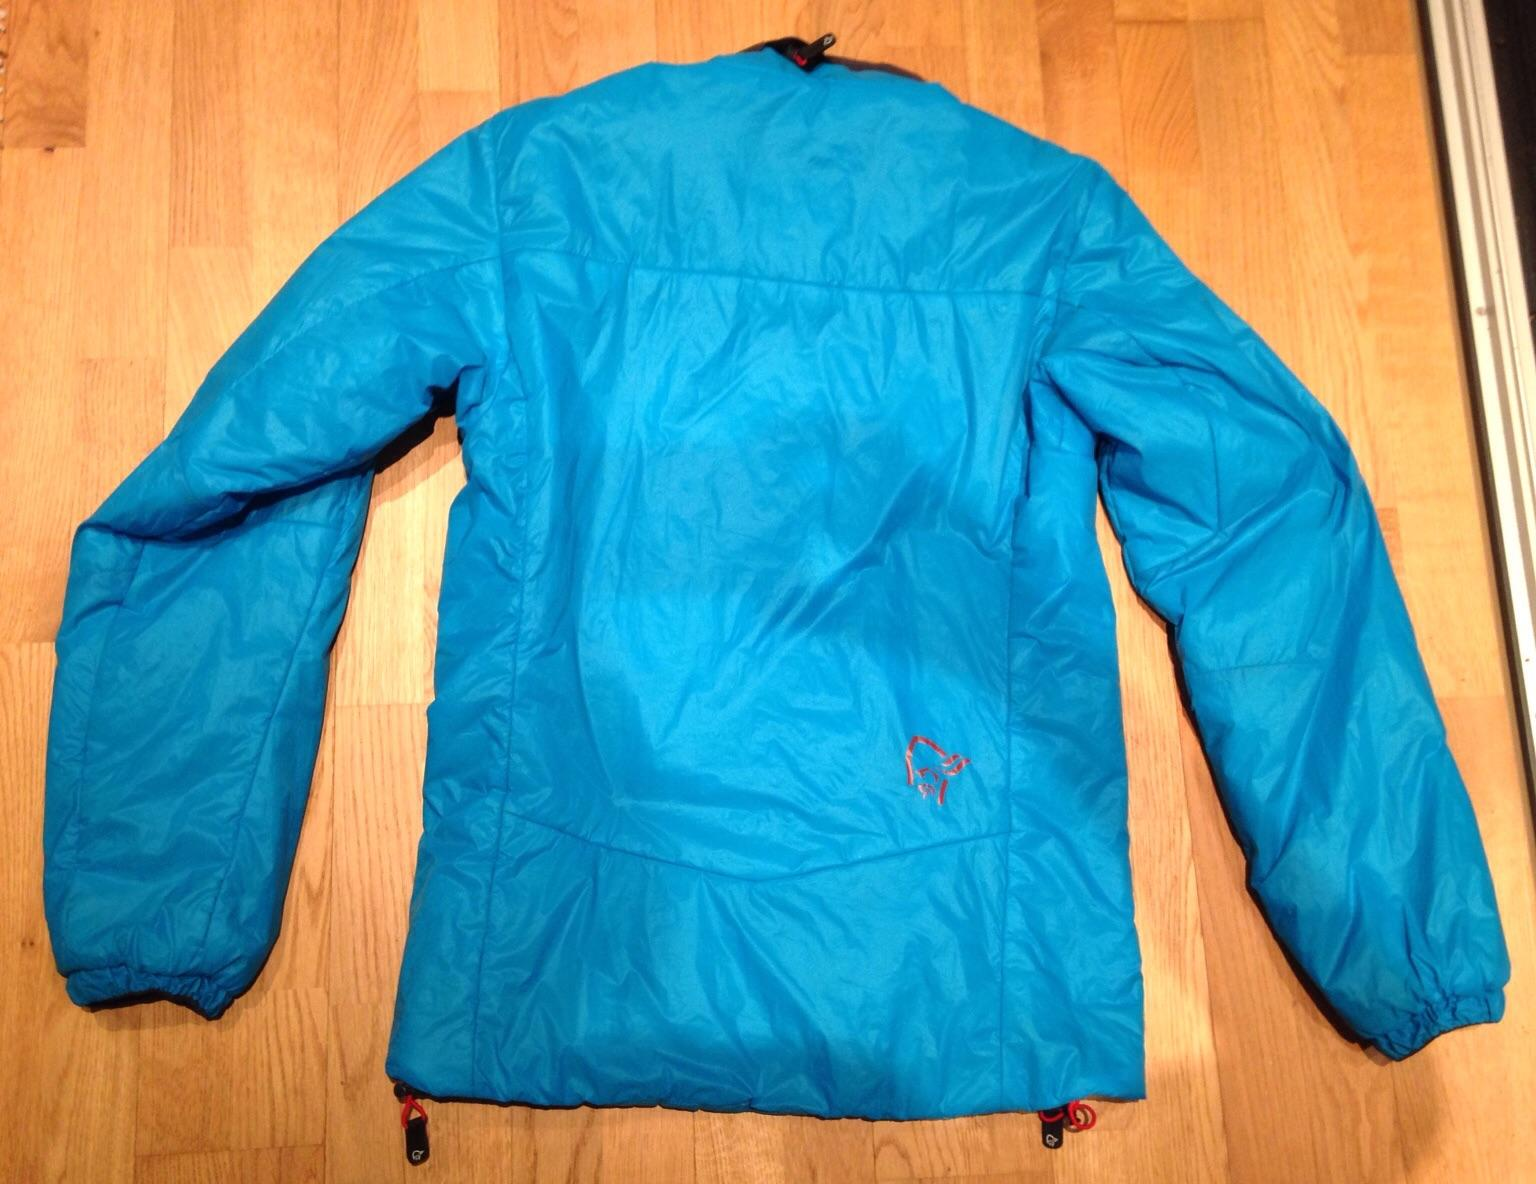 Adidas Sportjacke in 6952 Hittisau for €25.00 for sale Shpock